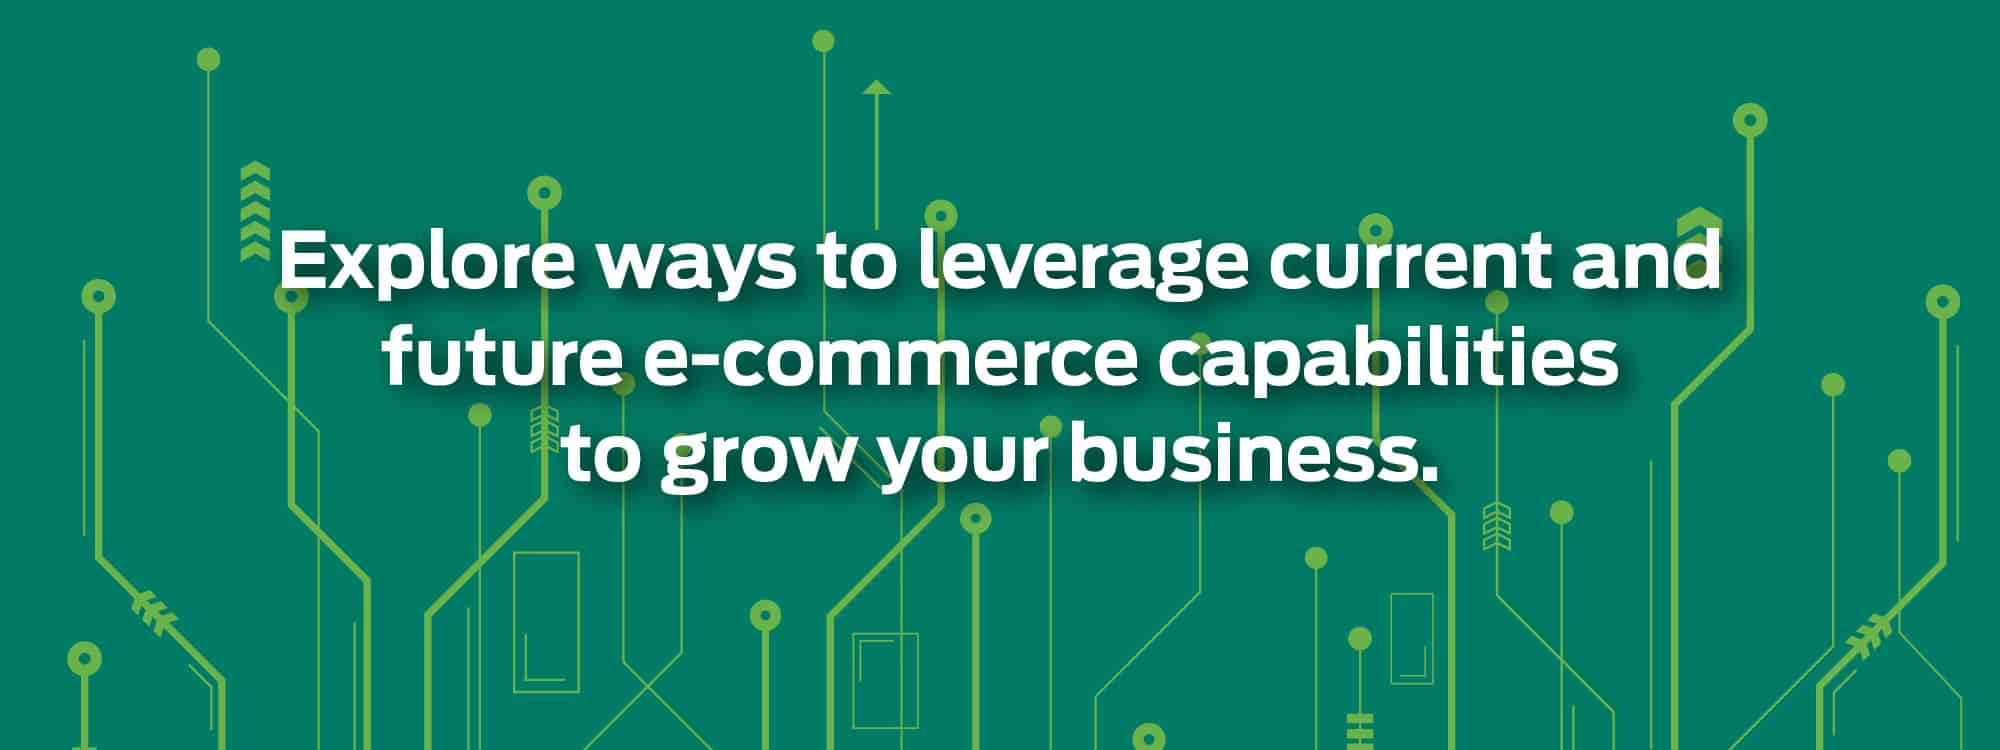 Explore ways to leverage current and future e-commerce capabilities to grow your business.